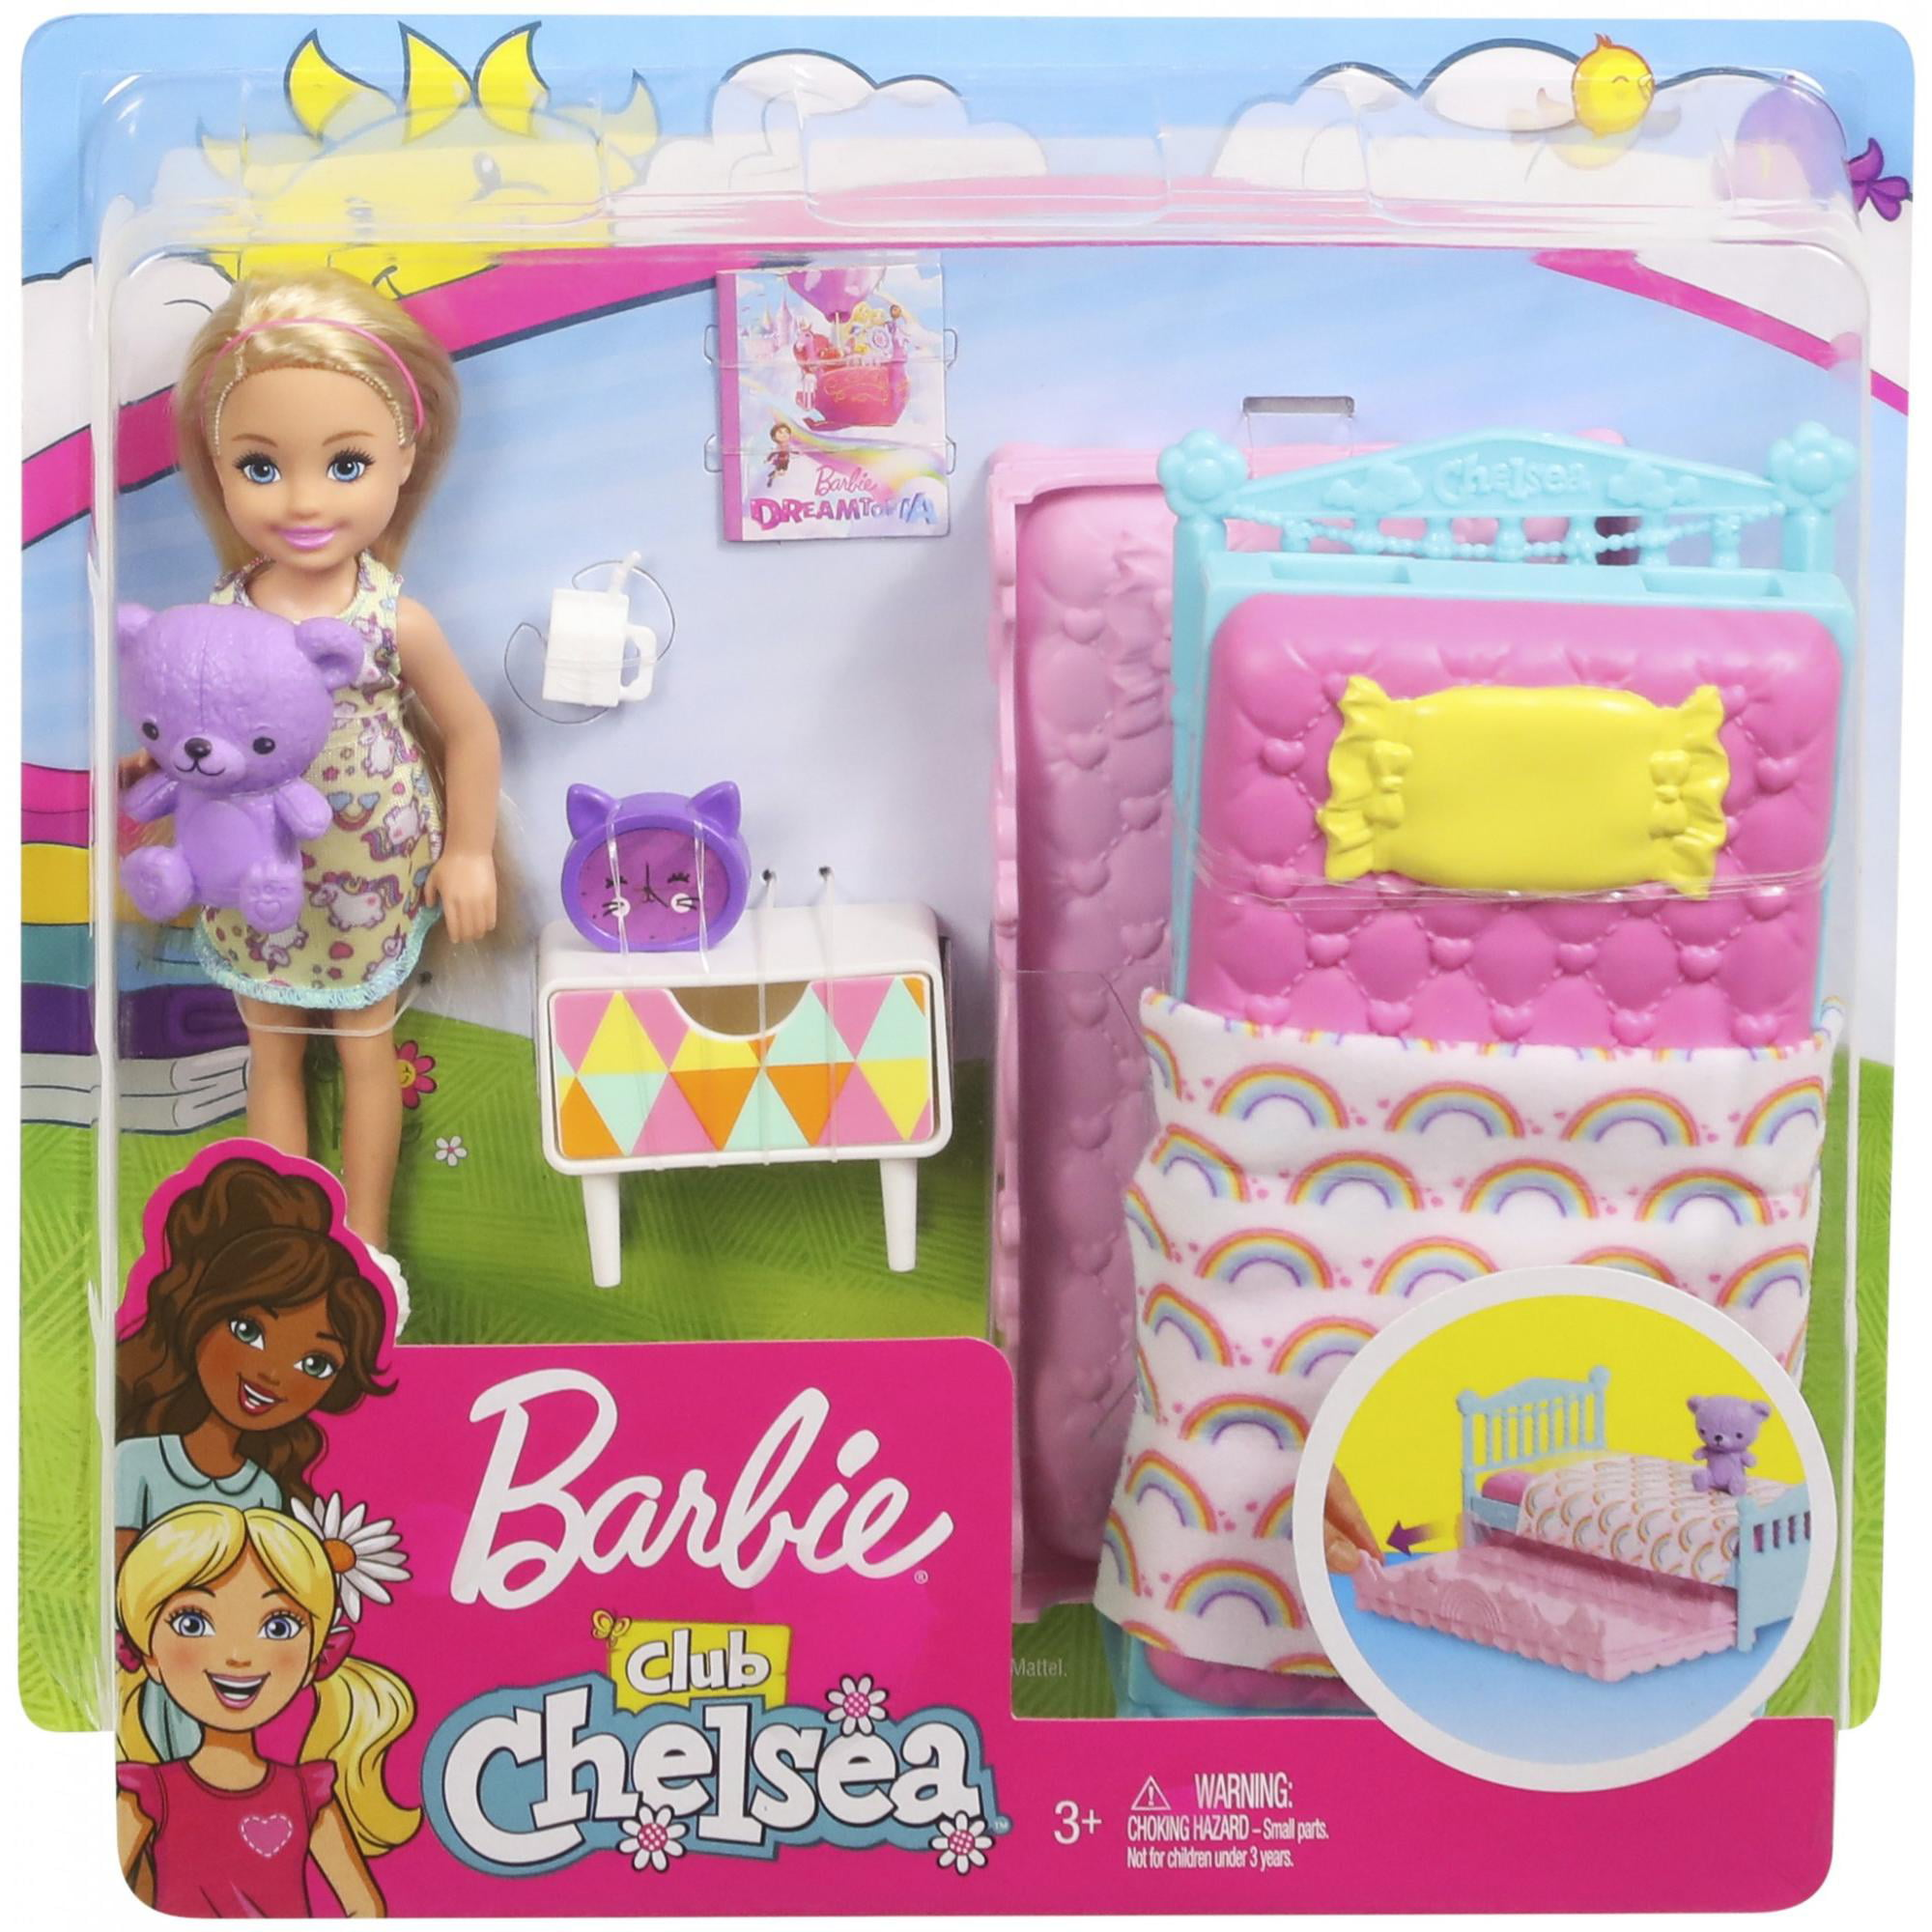 Barbie Club Chelsea Bedtime Doll And Bedroom Playset Walmart Com Walmart Com